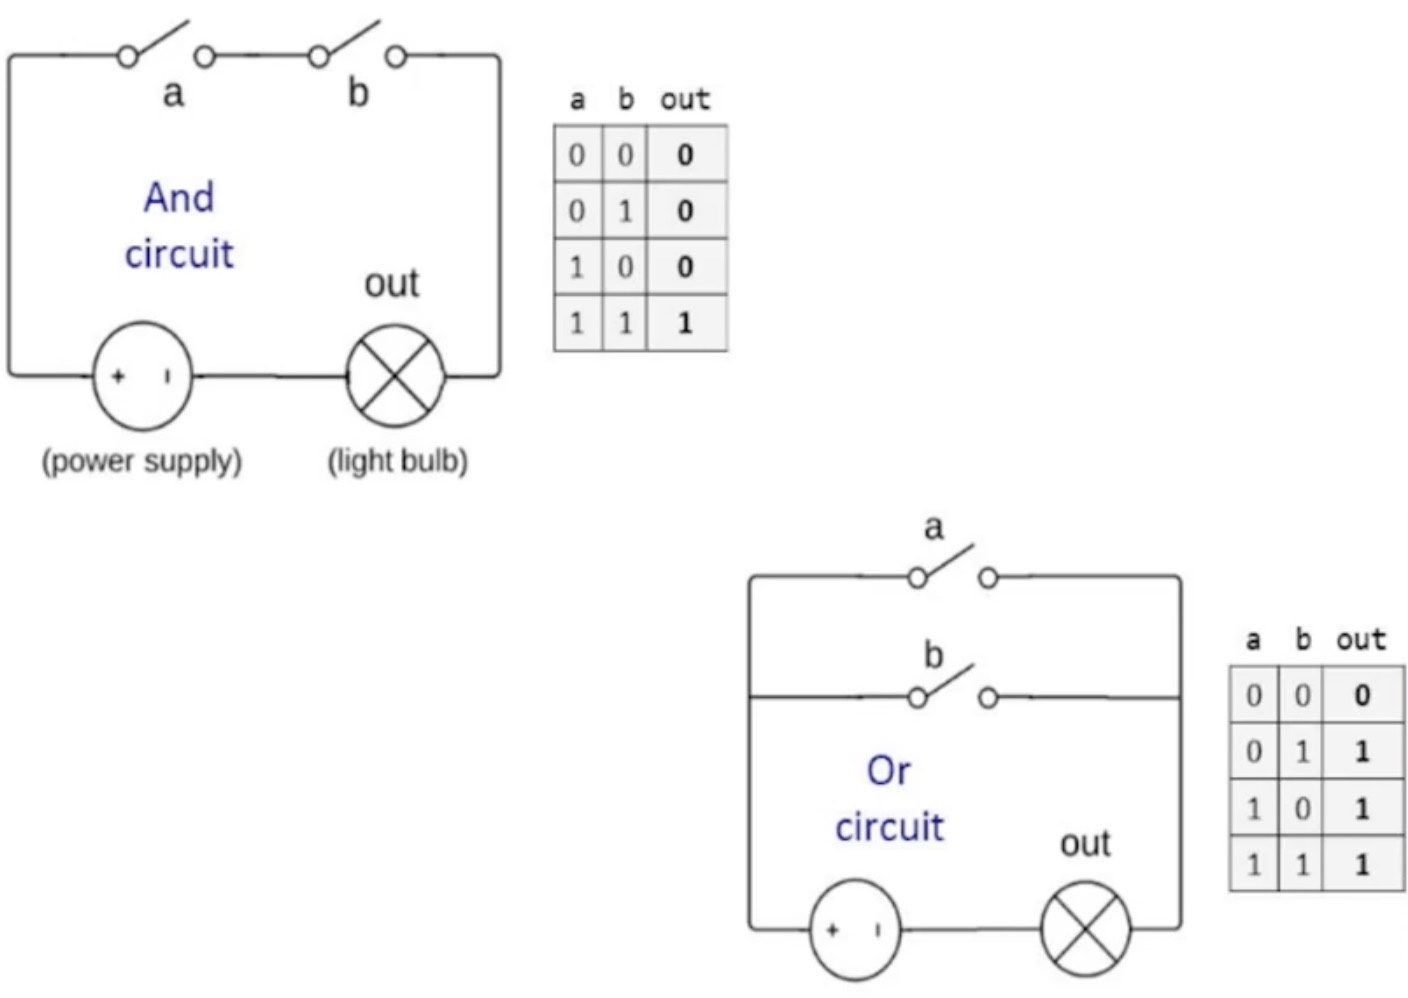 circuit implementations with AND and OR gate